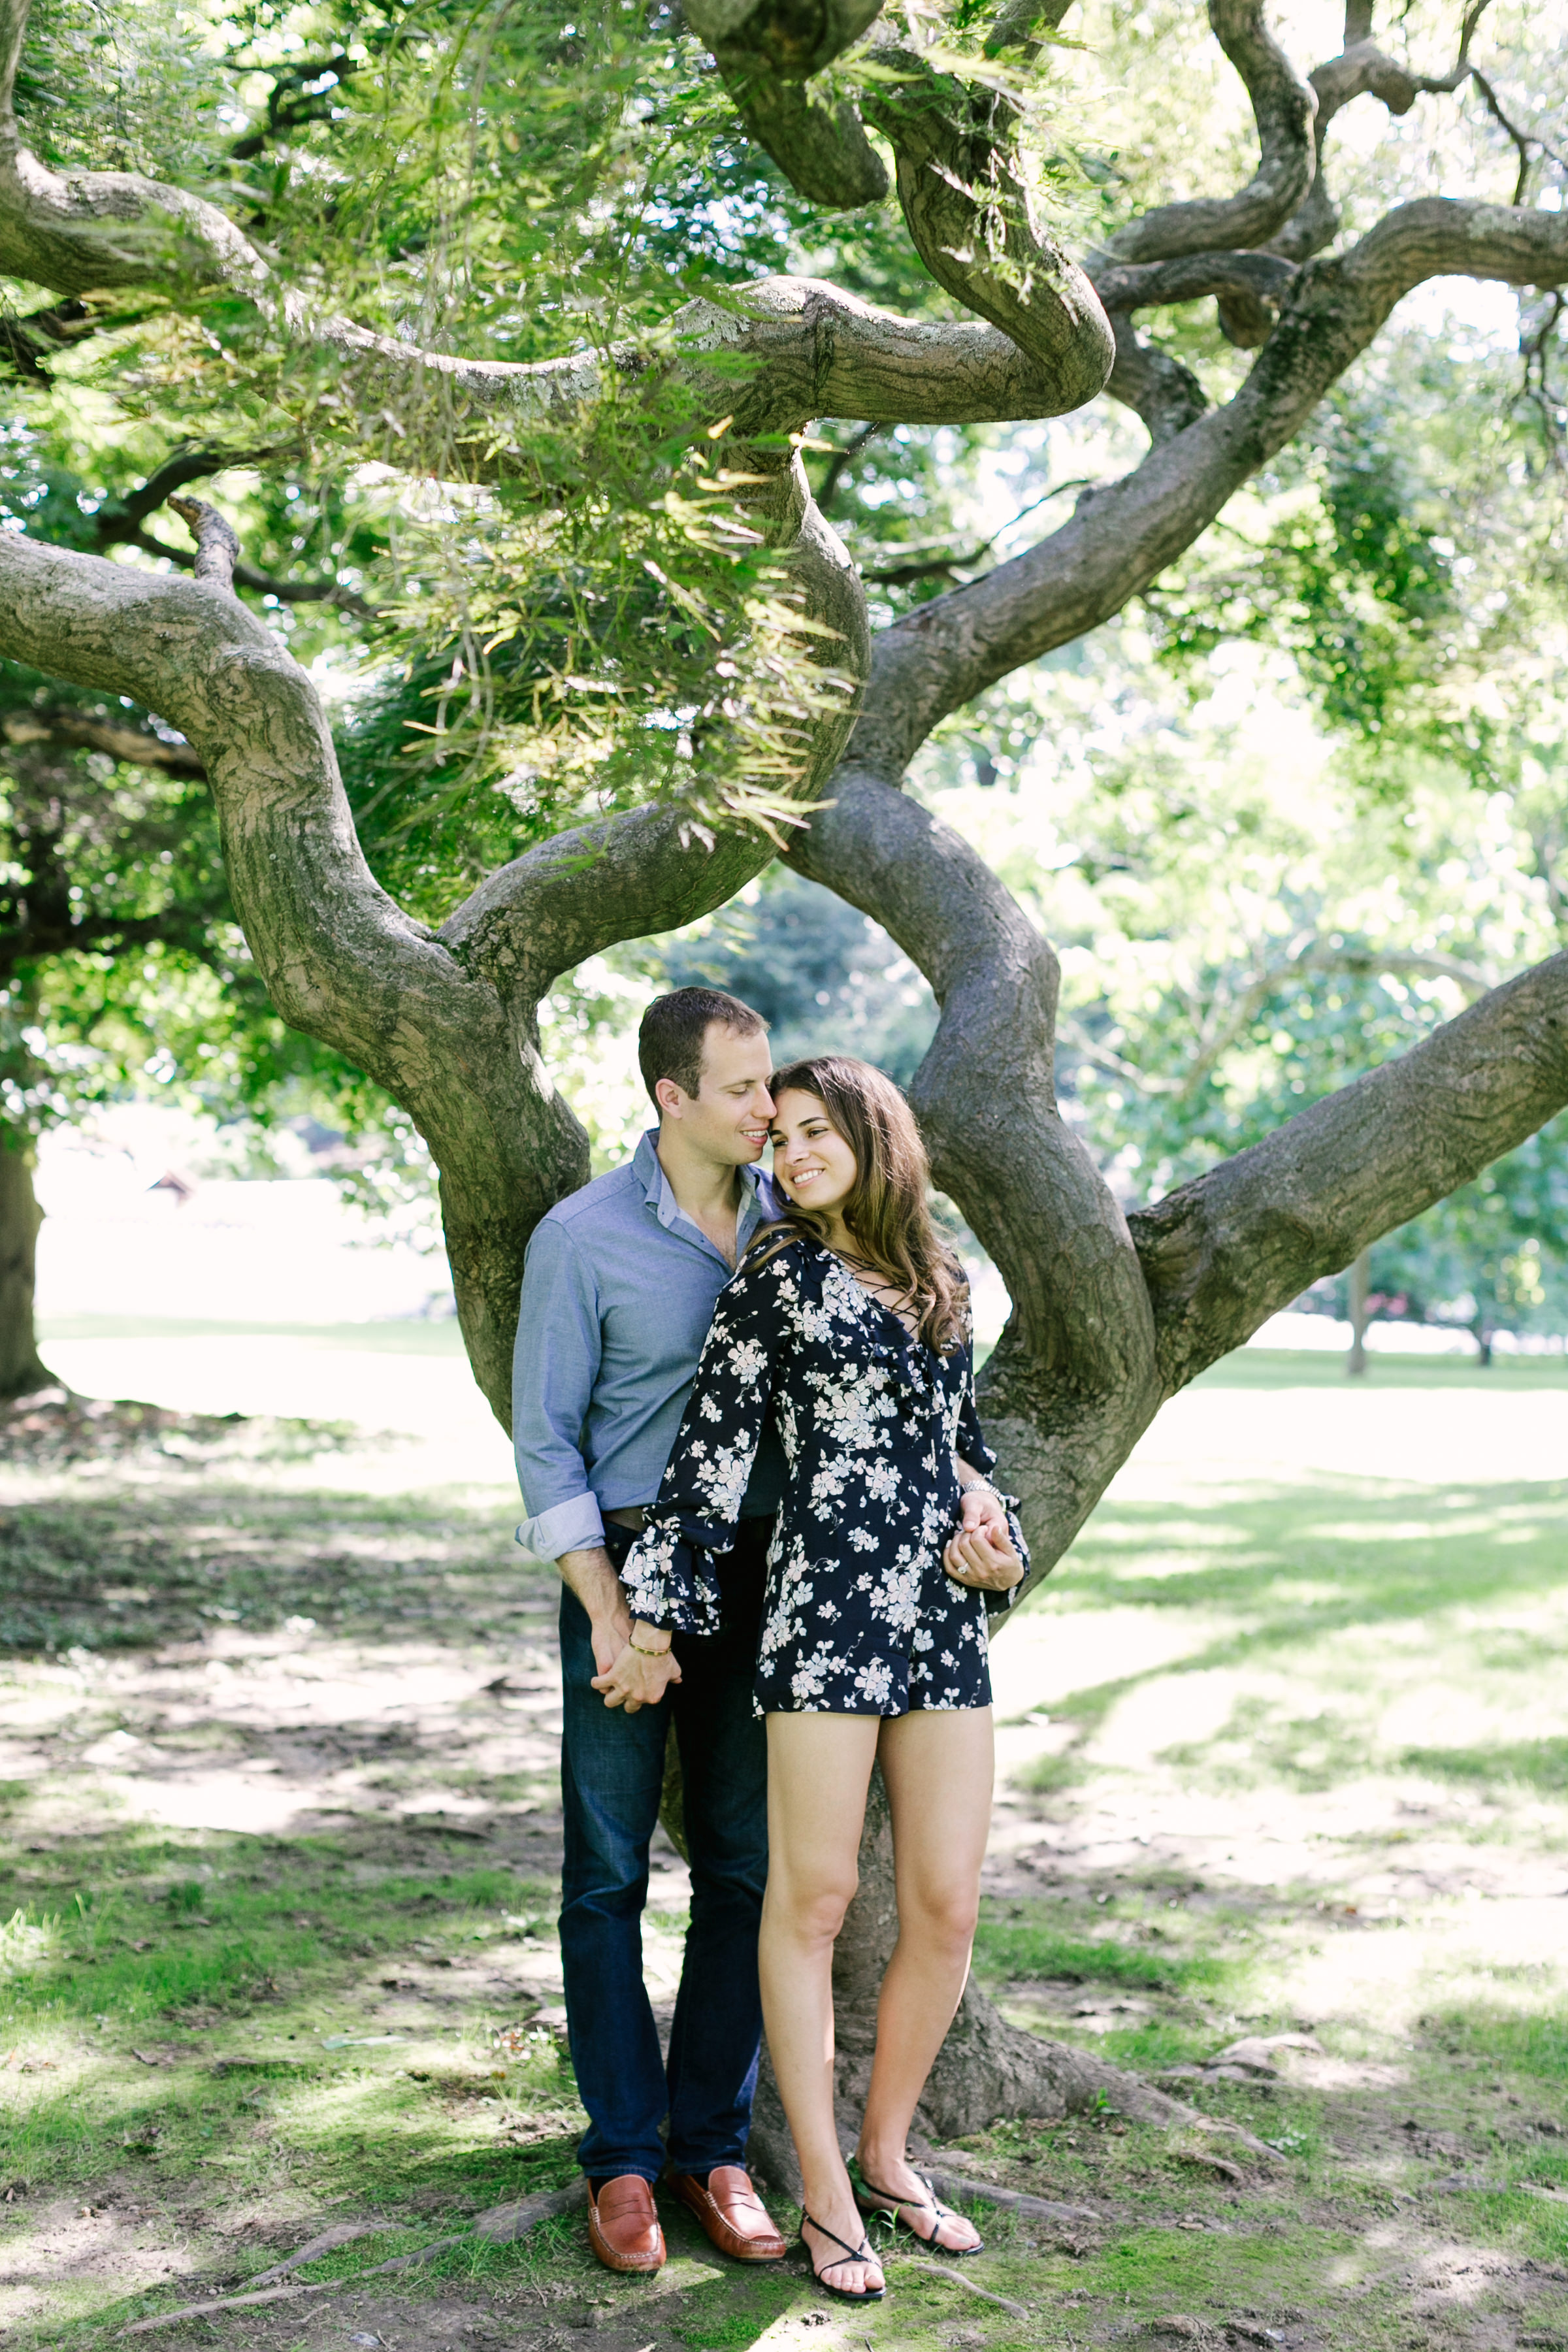 photography-family-natural-candid-engaged-fairmount-philadelphia-wedding-horticultural center-modern-lifestyle-03.JPG